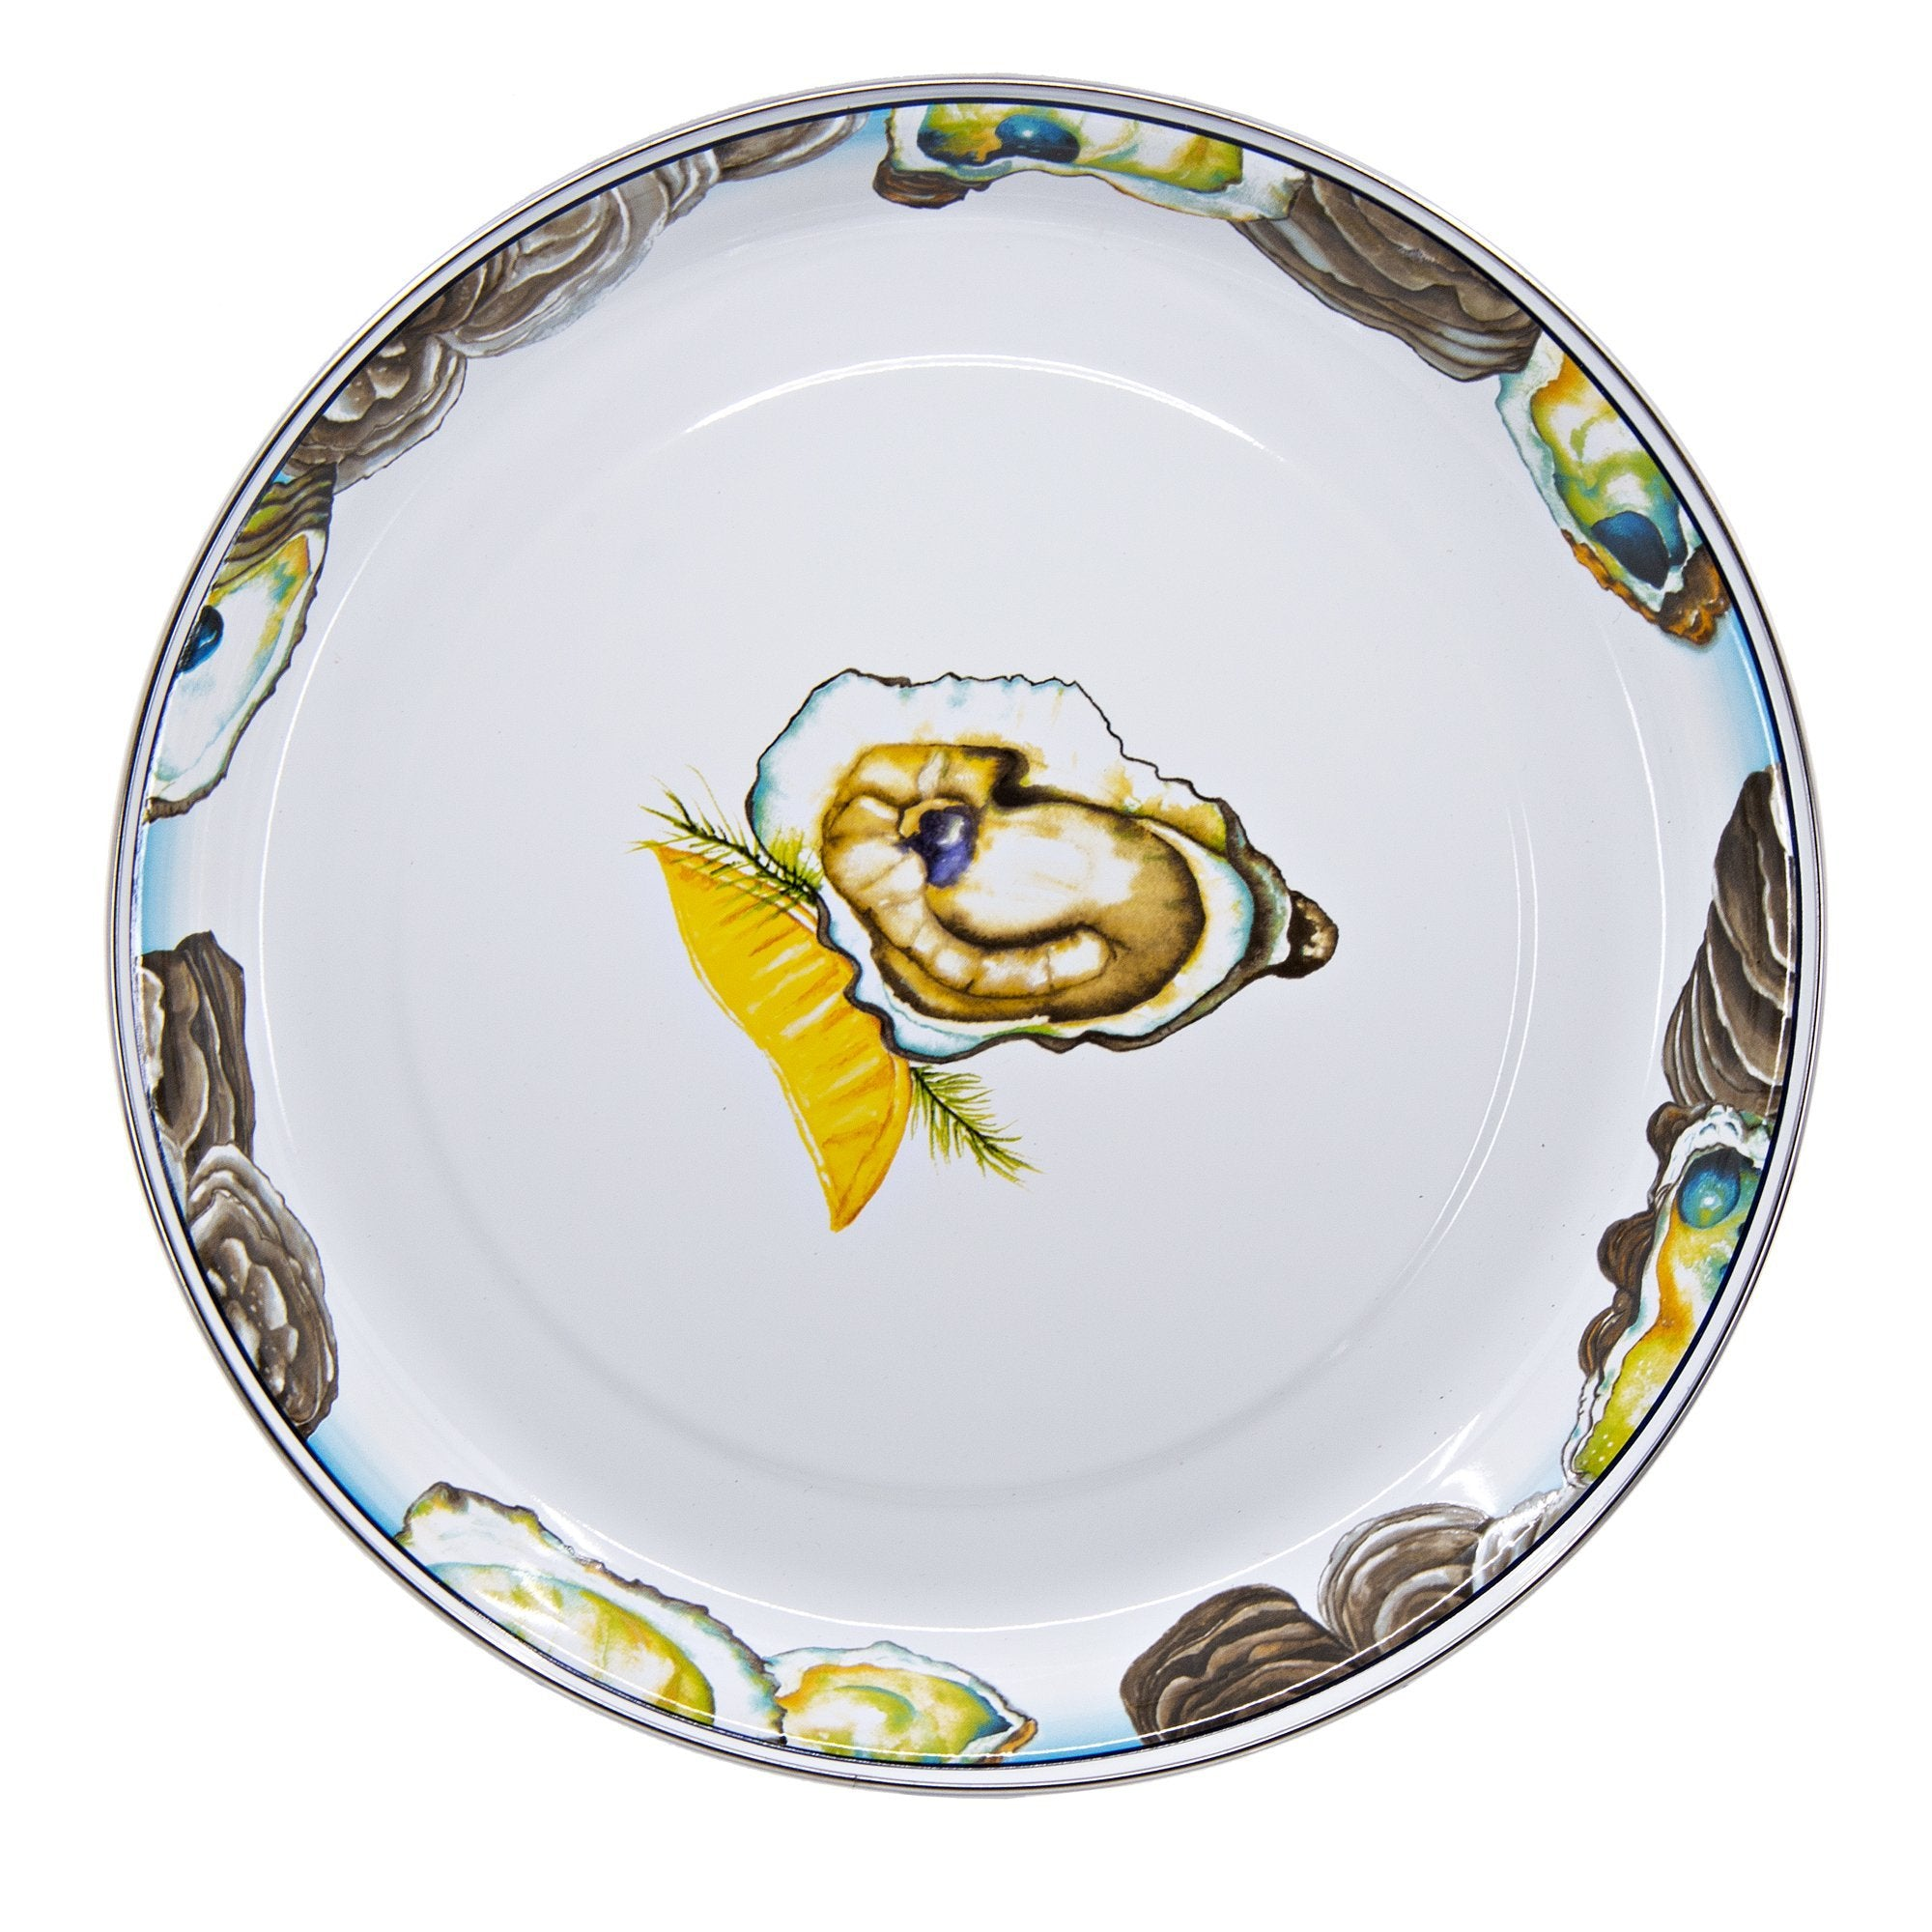 OY08 - Oyster - Enamelware - 13 Inch Round Tray